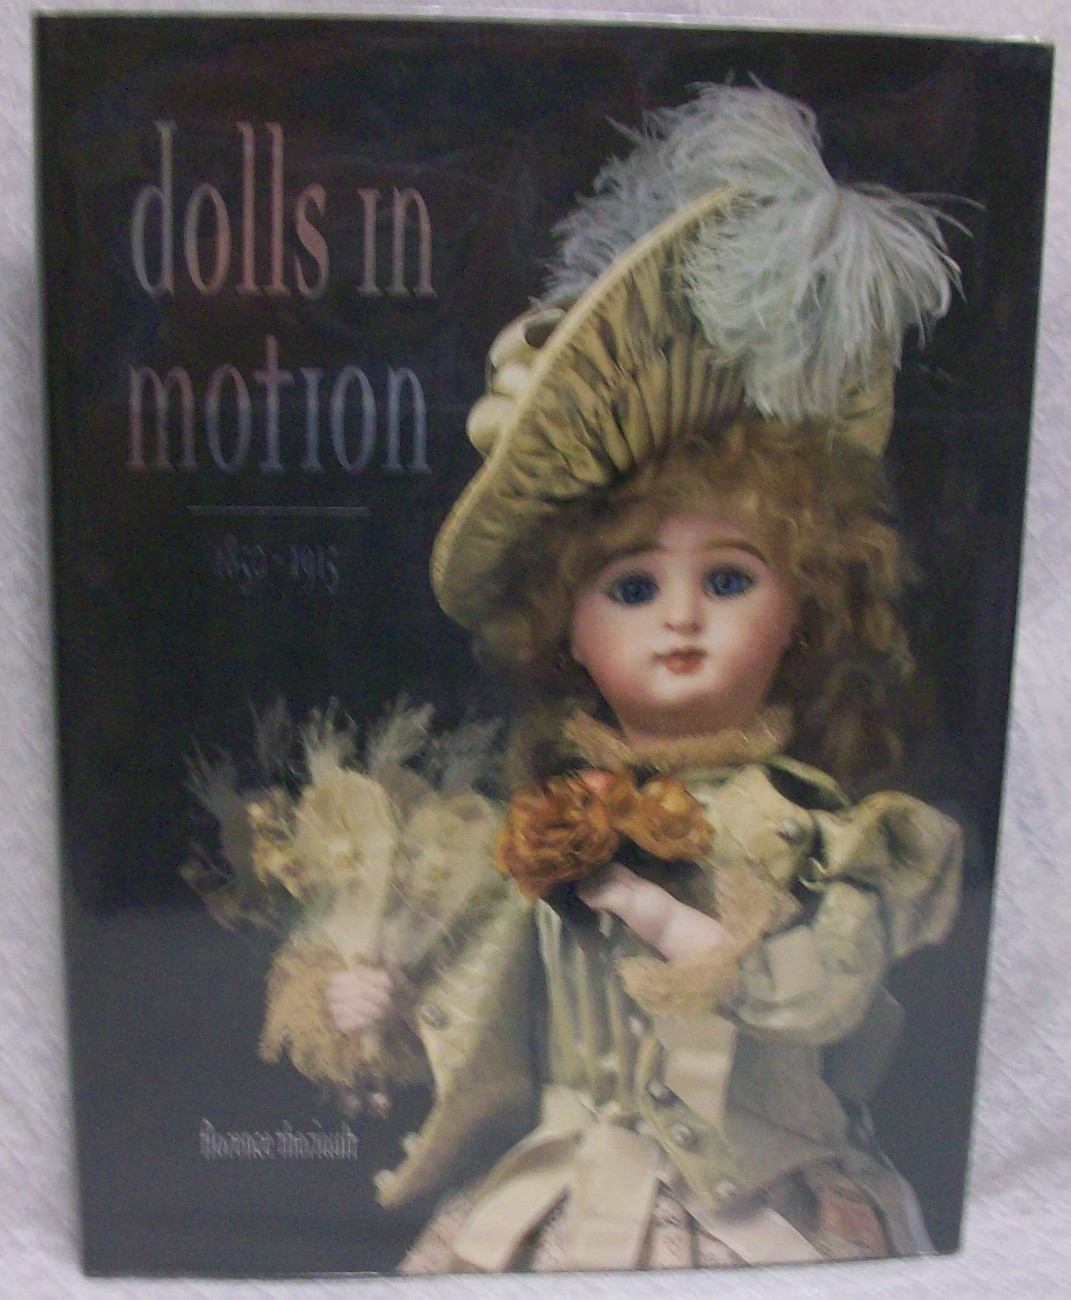 Dollmontion